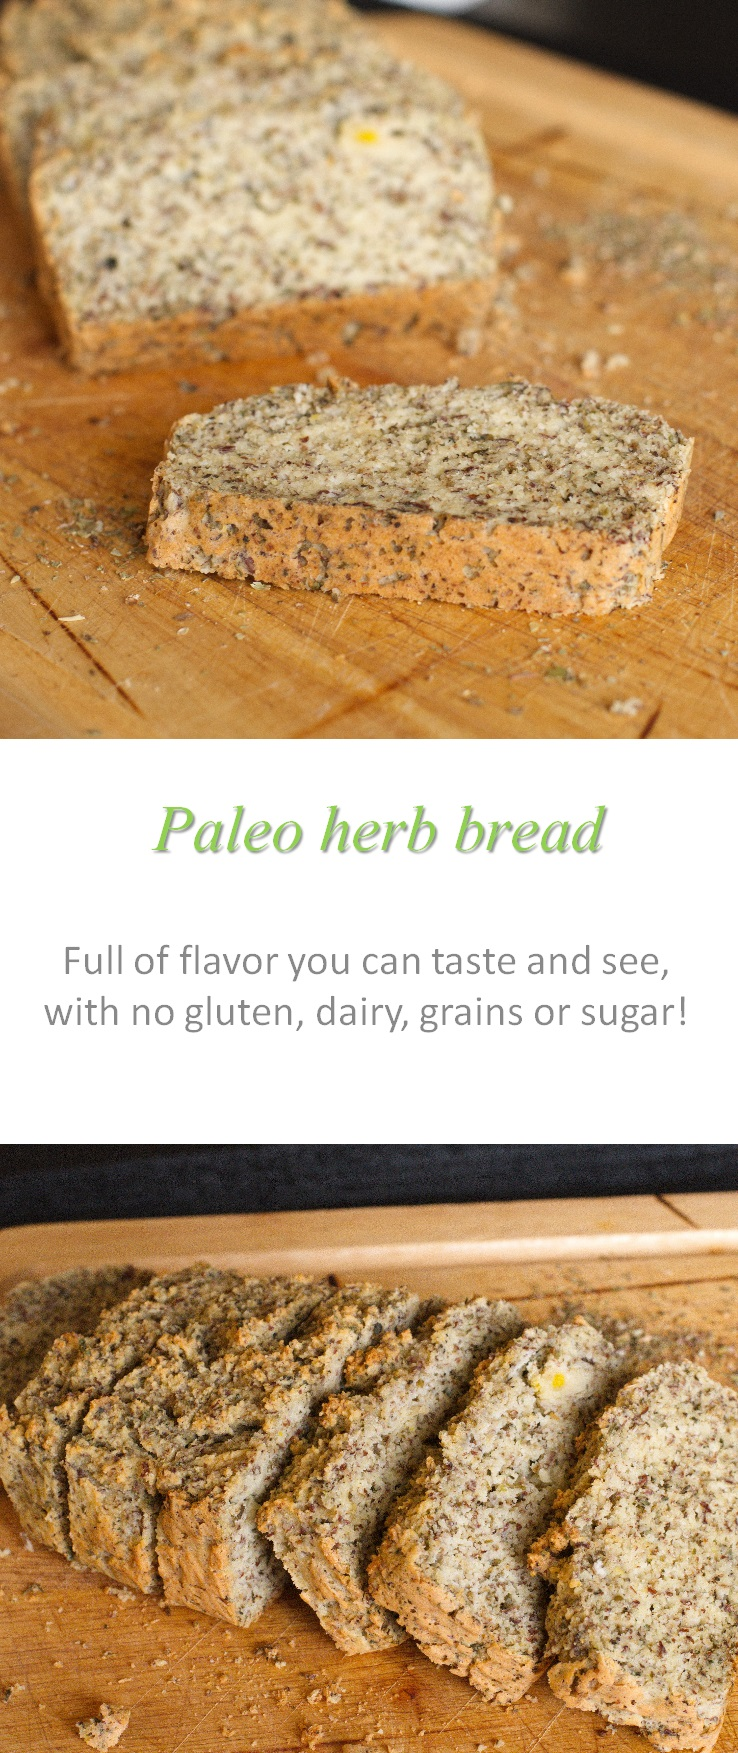 This Paleo herb bread is a perfect side for any meal - so good to mop up those extra juicy sauces! #bread #paleo #cookathome #glutenfree #dairyfree